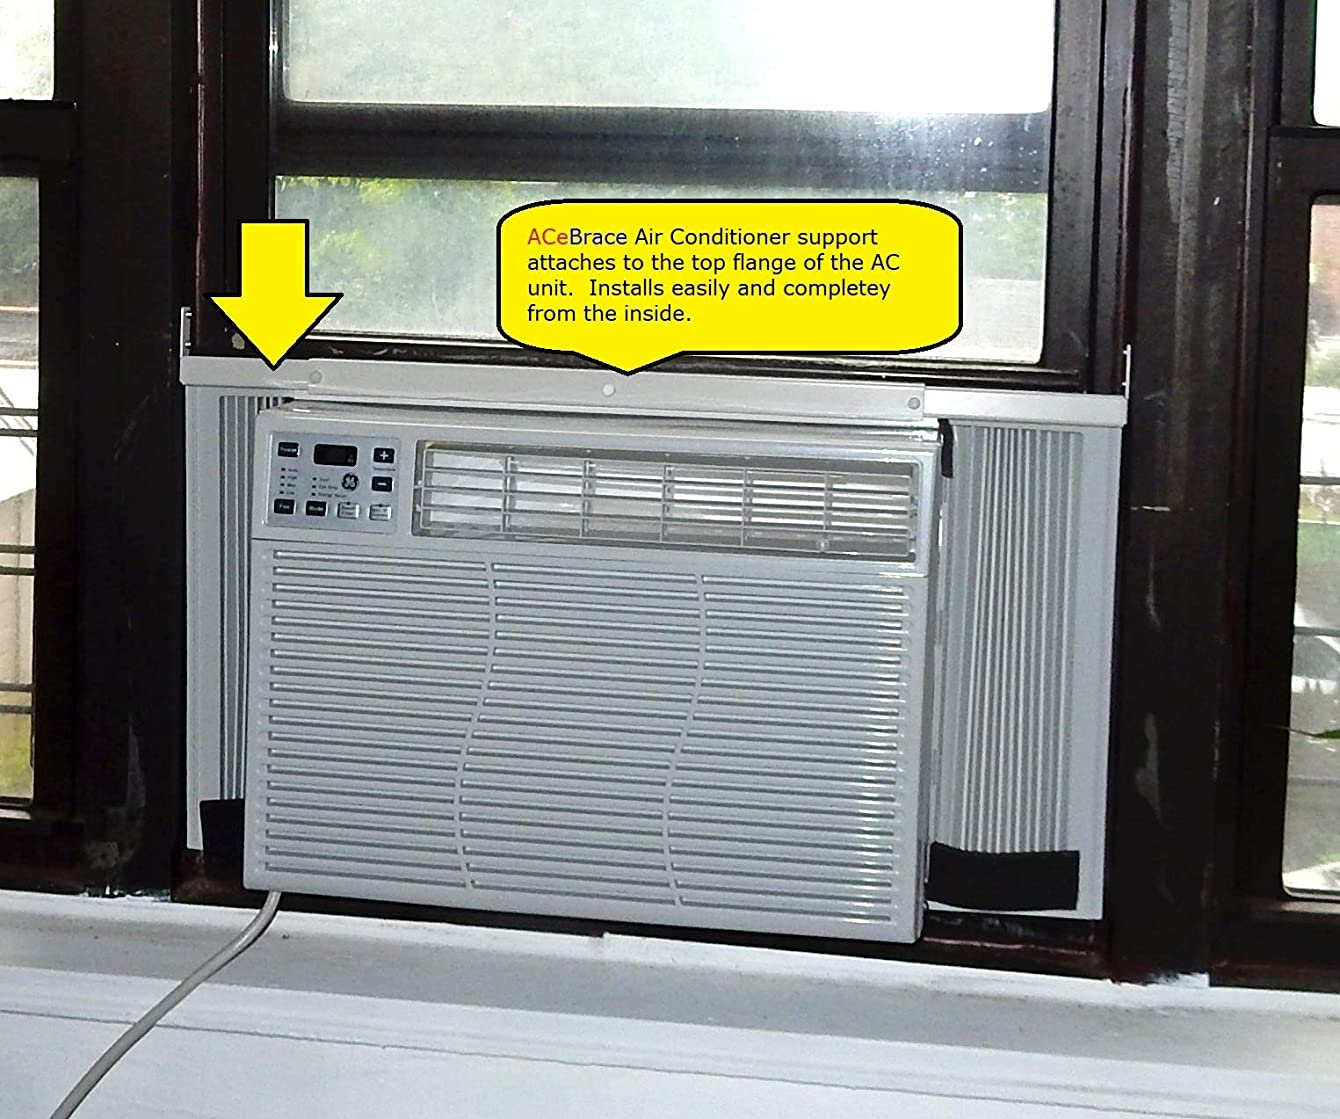 AceBrace Air Conditioner Support for Standard Window Air Conditioners - Universal AC Window Bracket- Air Conditioner Support - AC Child Protection - Window Guard and Air Conditioner Support